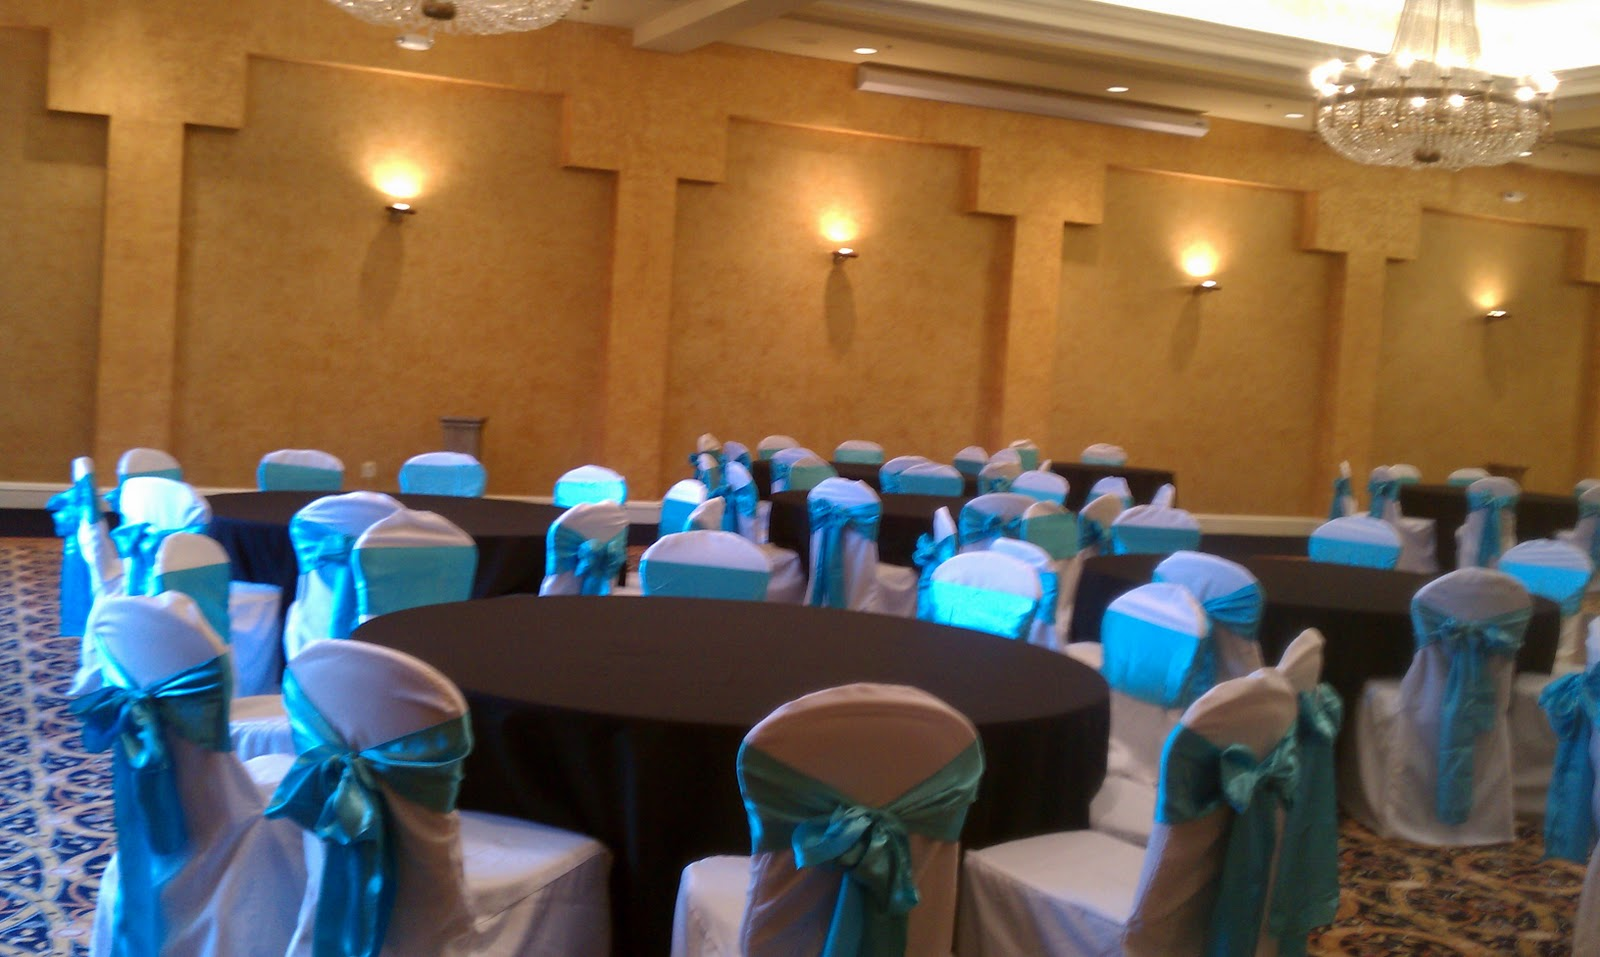 Chair Cover Rentals Dc Rocking Rockers Le Fabuleux Events And Party Springfield Va